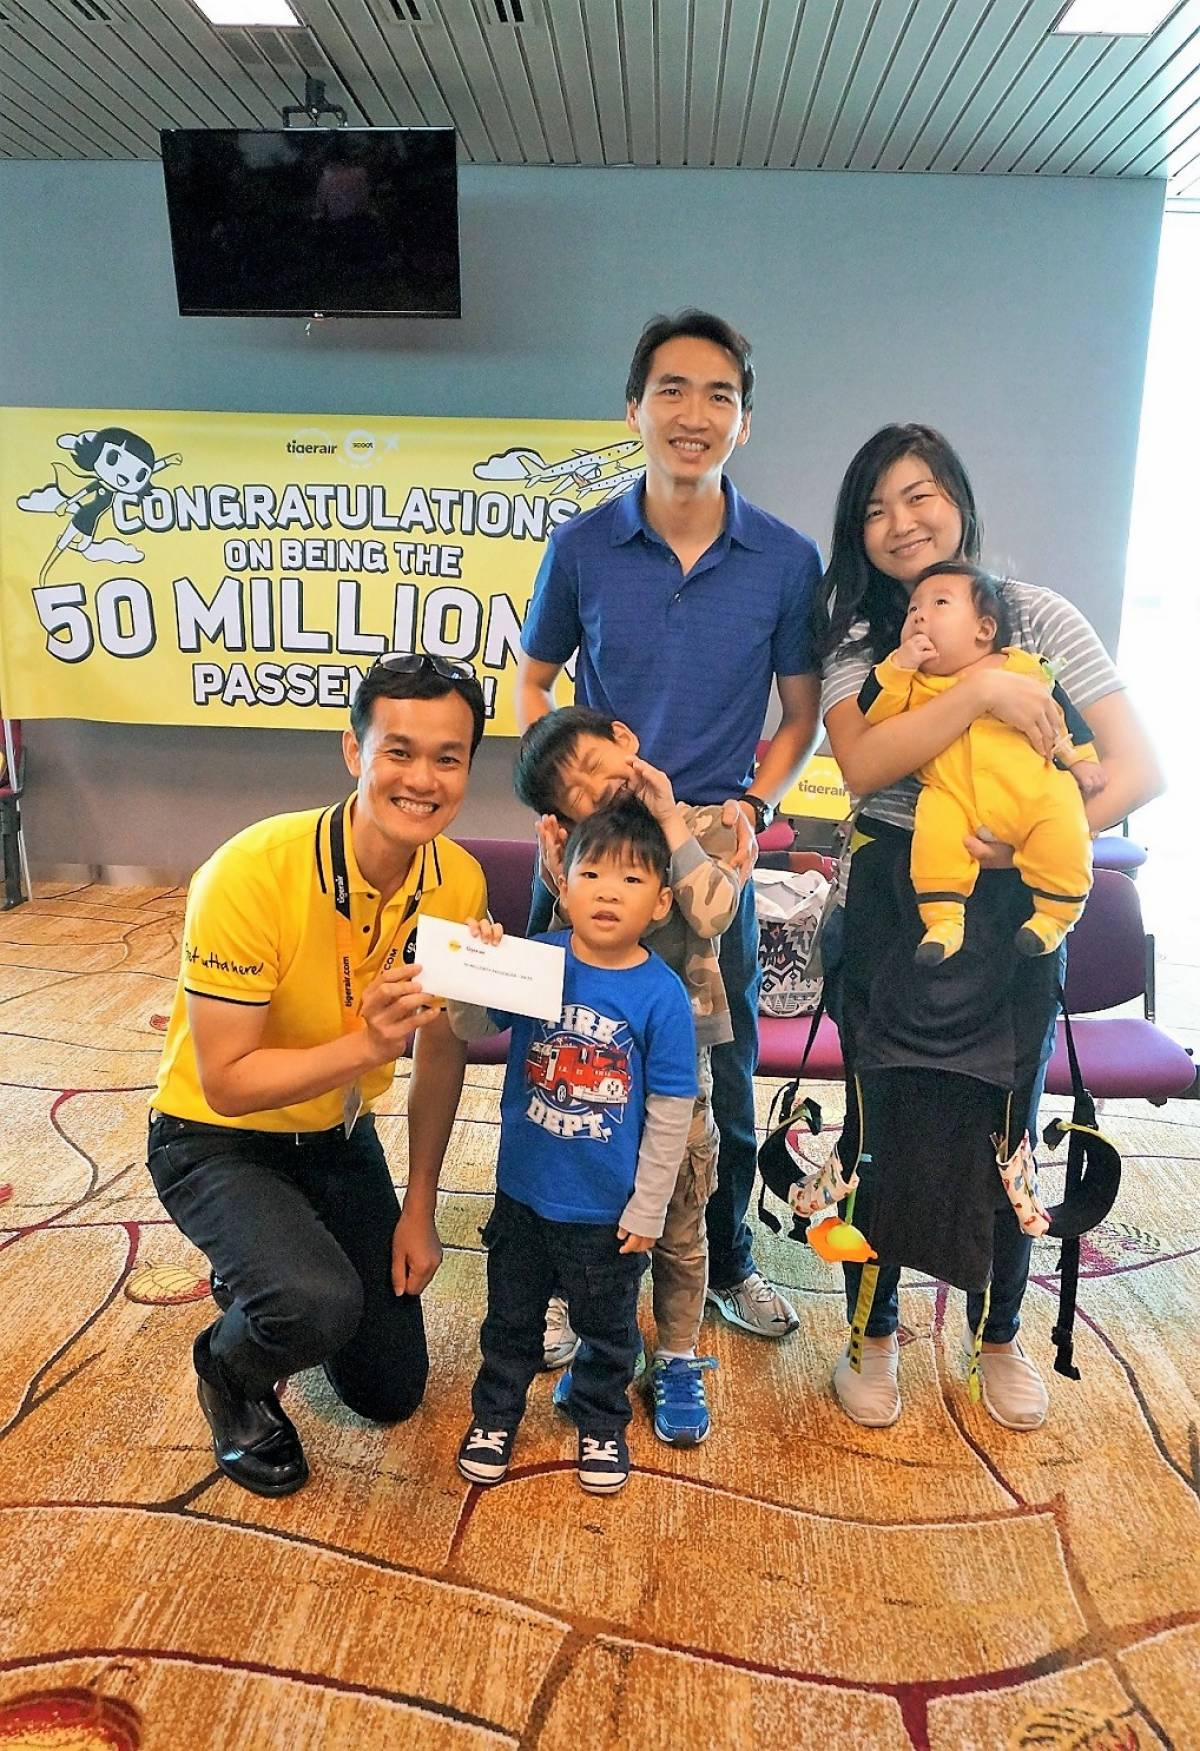 Scoot and Tigerair Celebrate 50 Millionth Guest on Board!